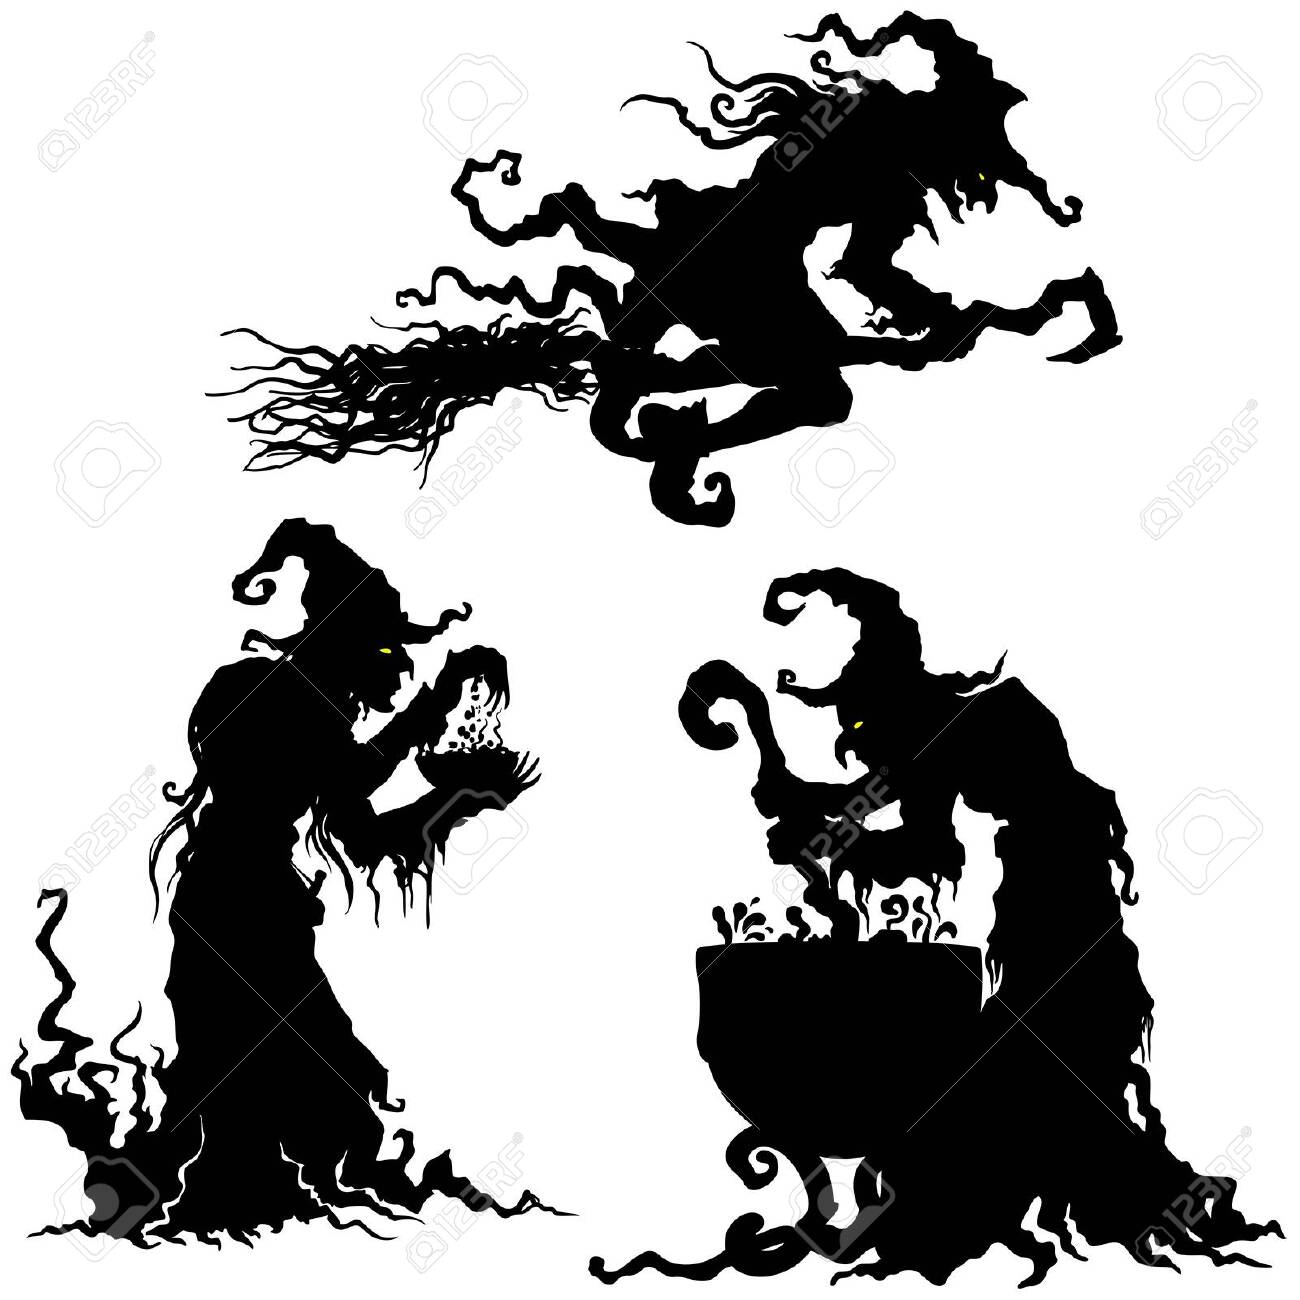 Illustration fantasy grotesque witch women silhouettes - 131755223